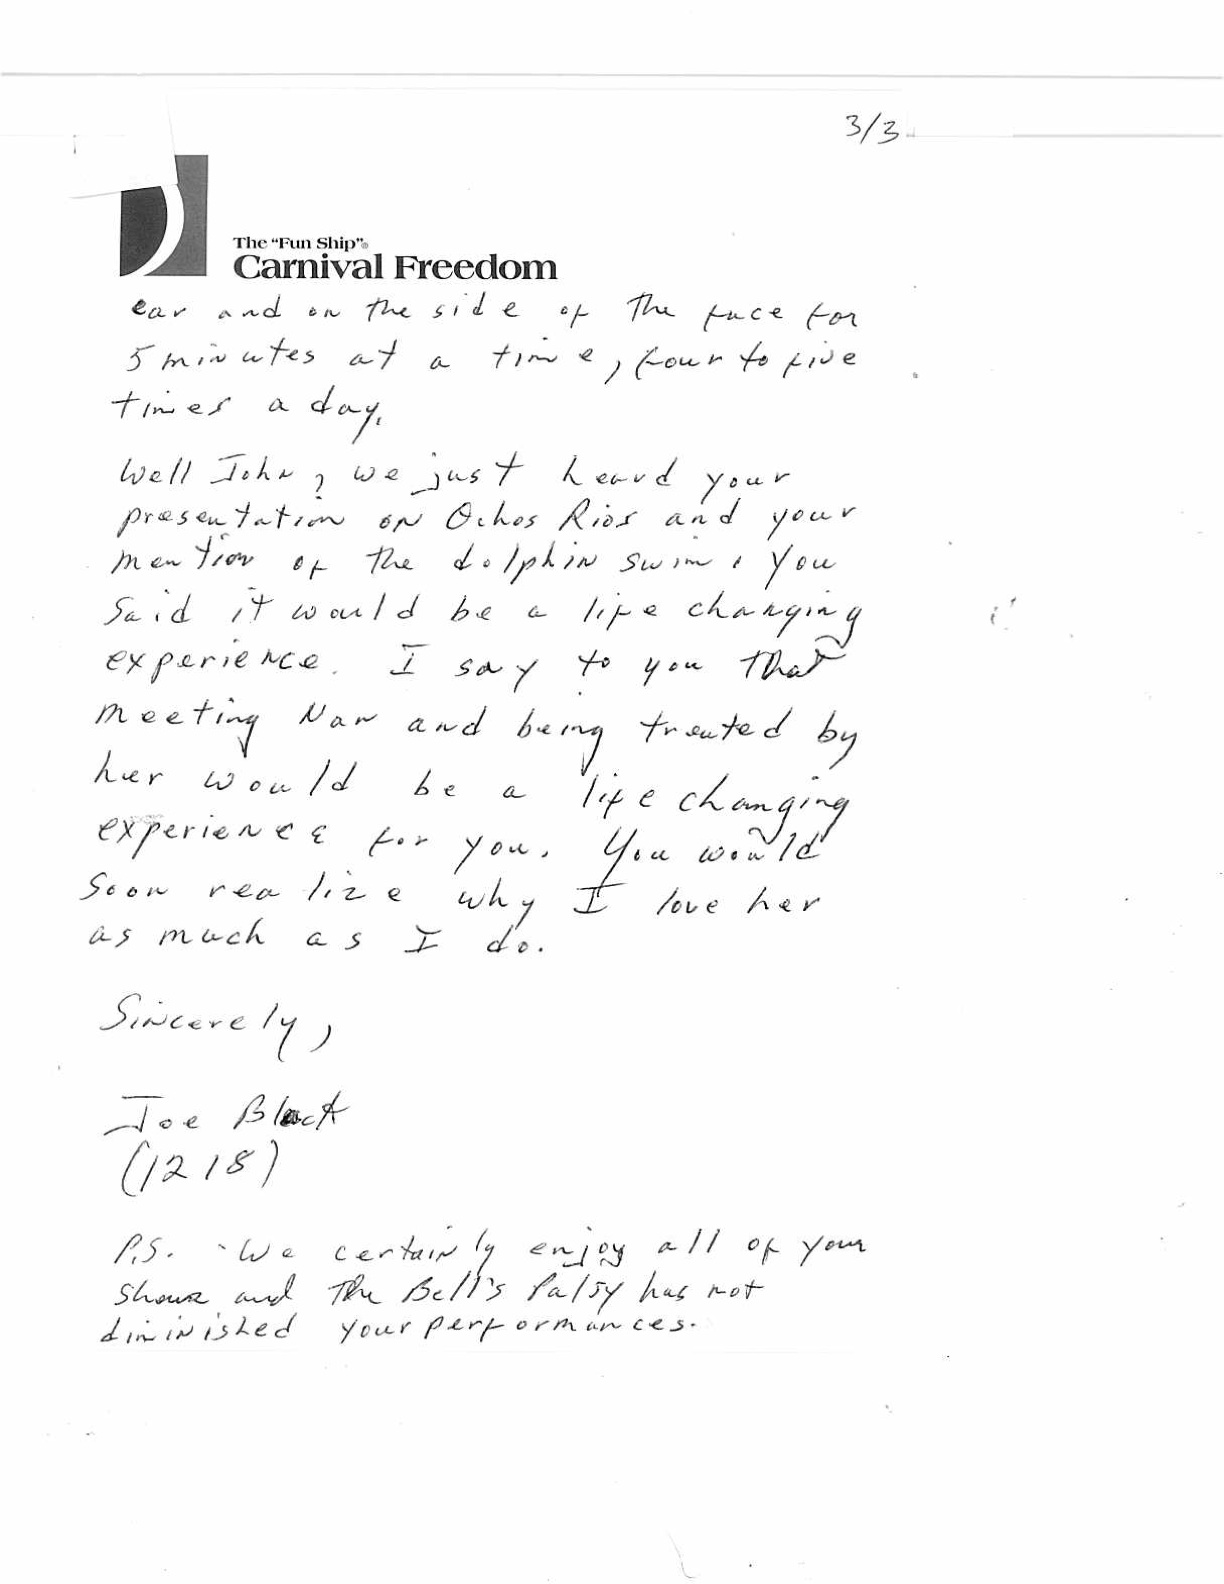 letter2page3.jpg